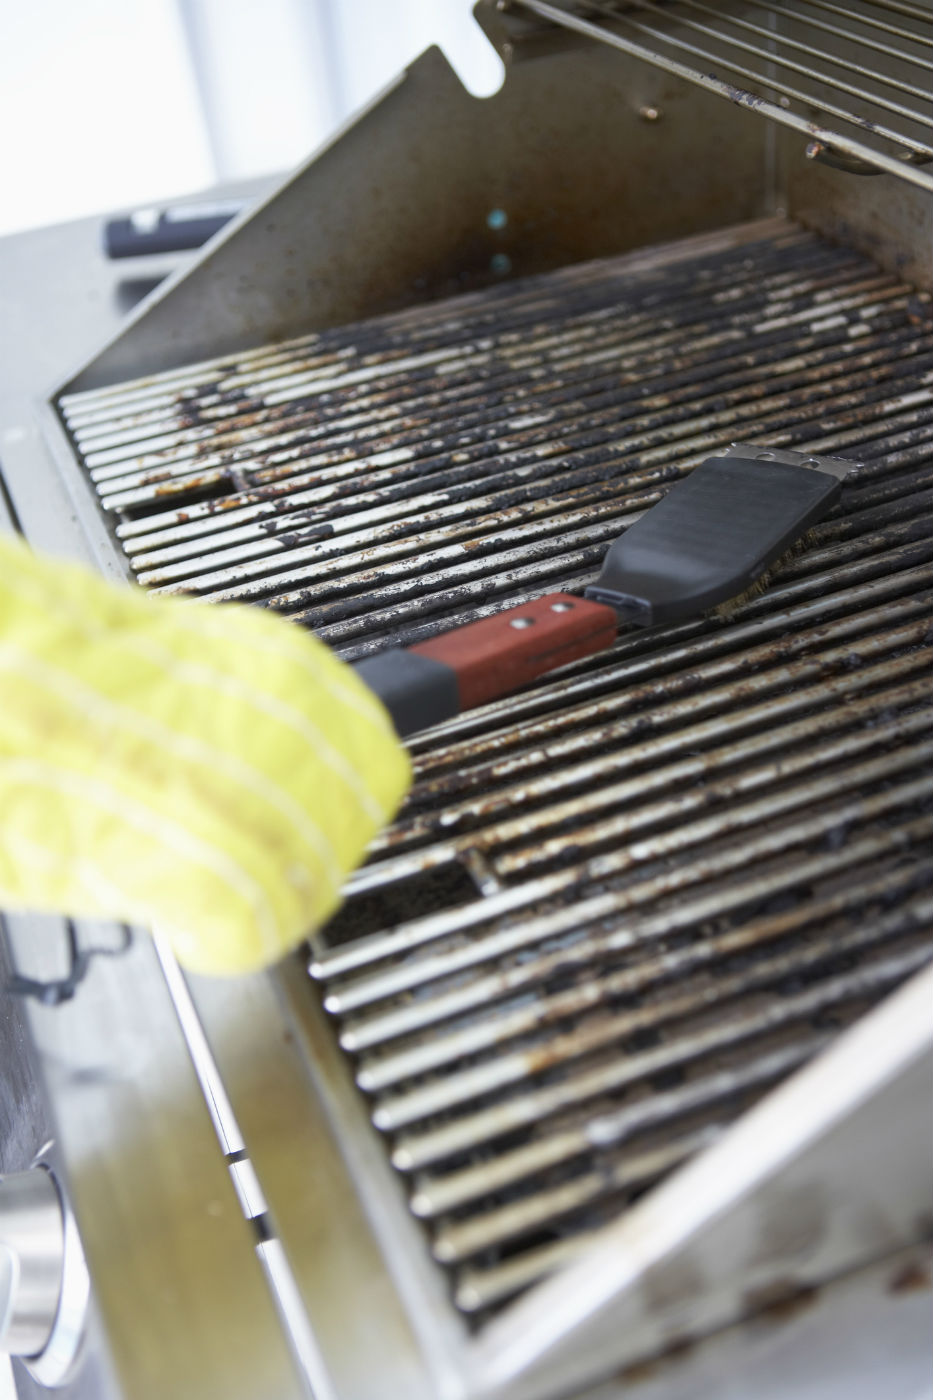 Cleaning a grill grate